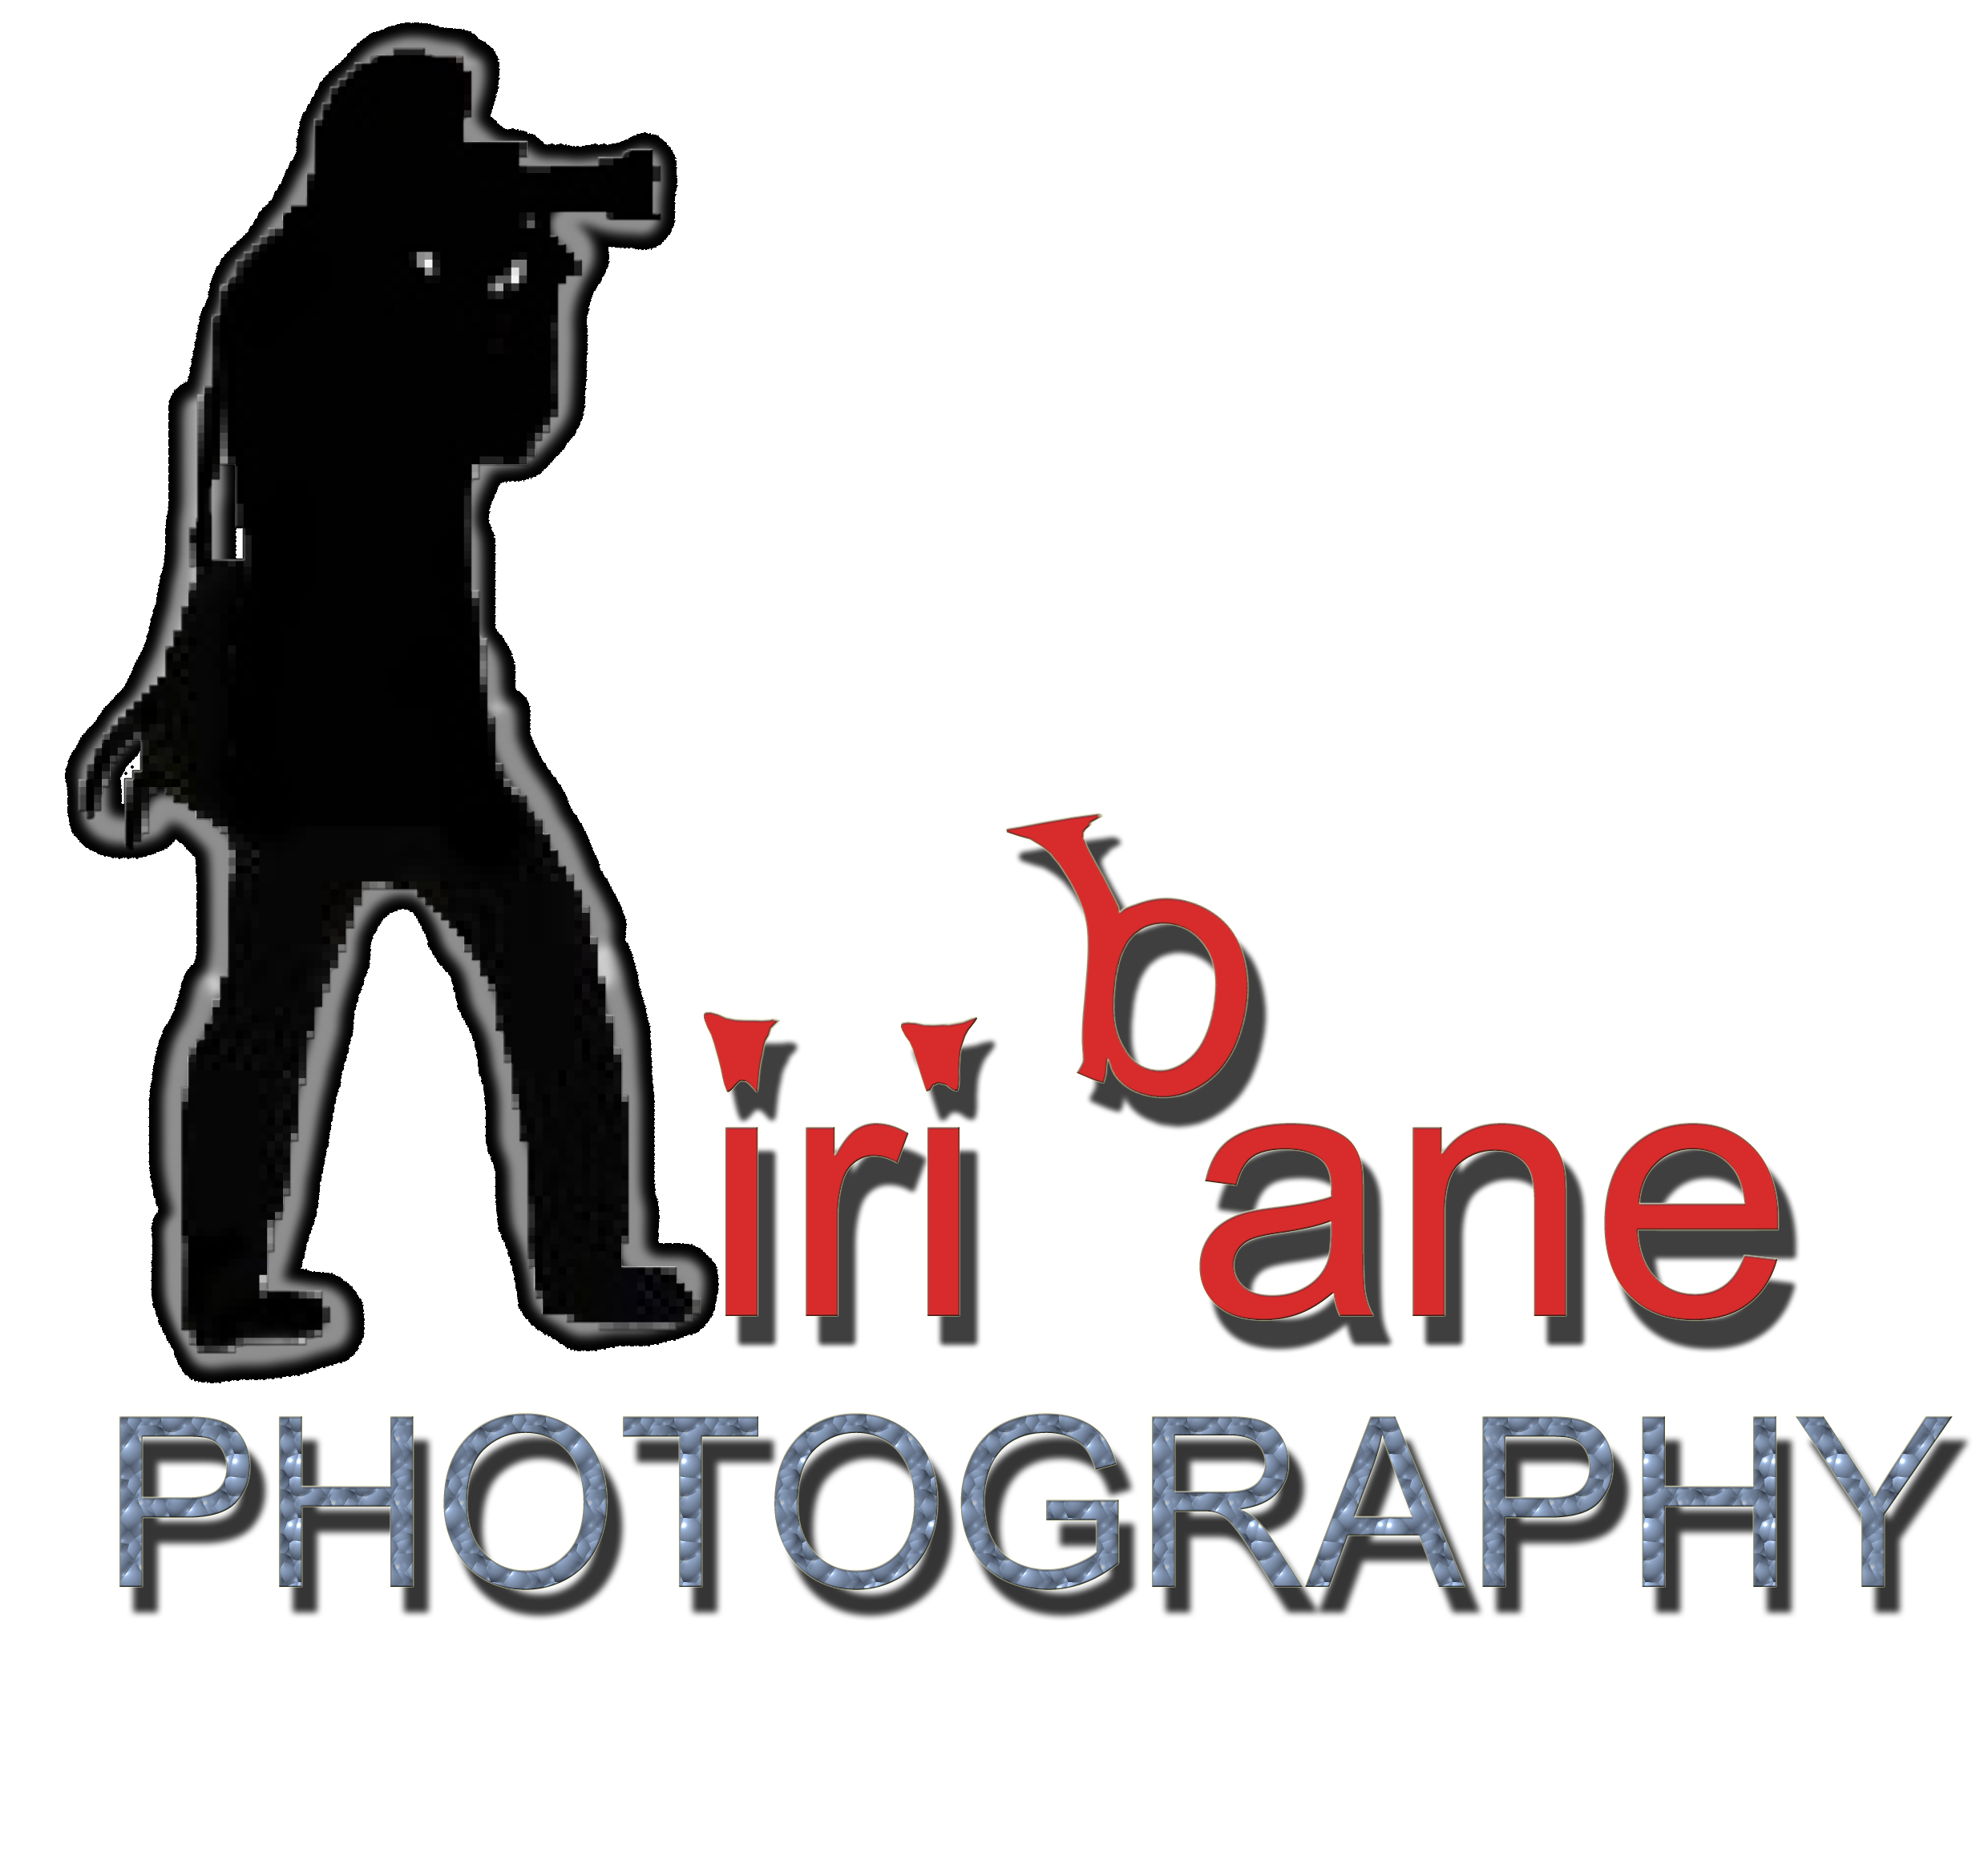 Kiribane Photography Logbook